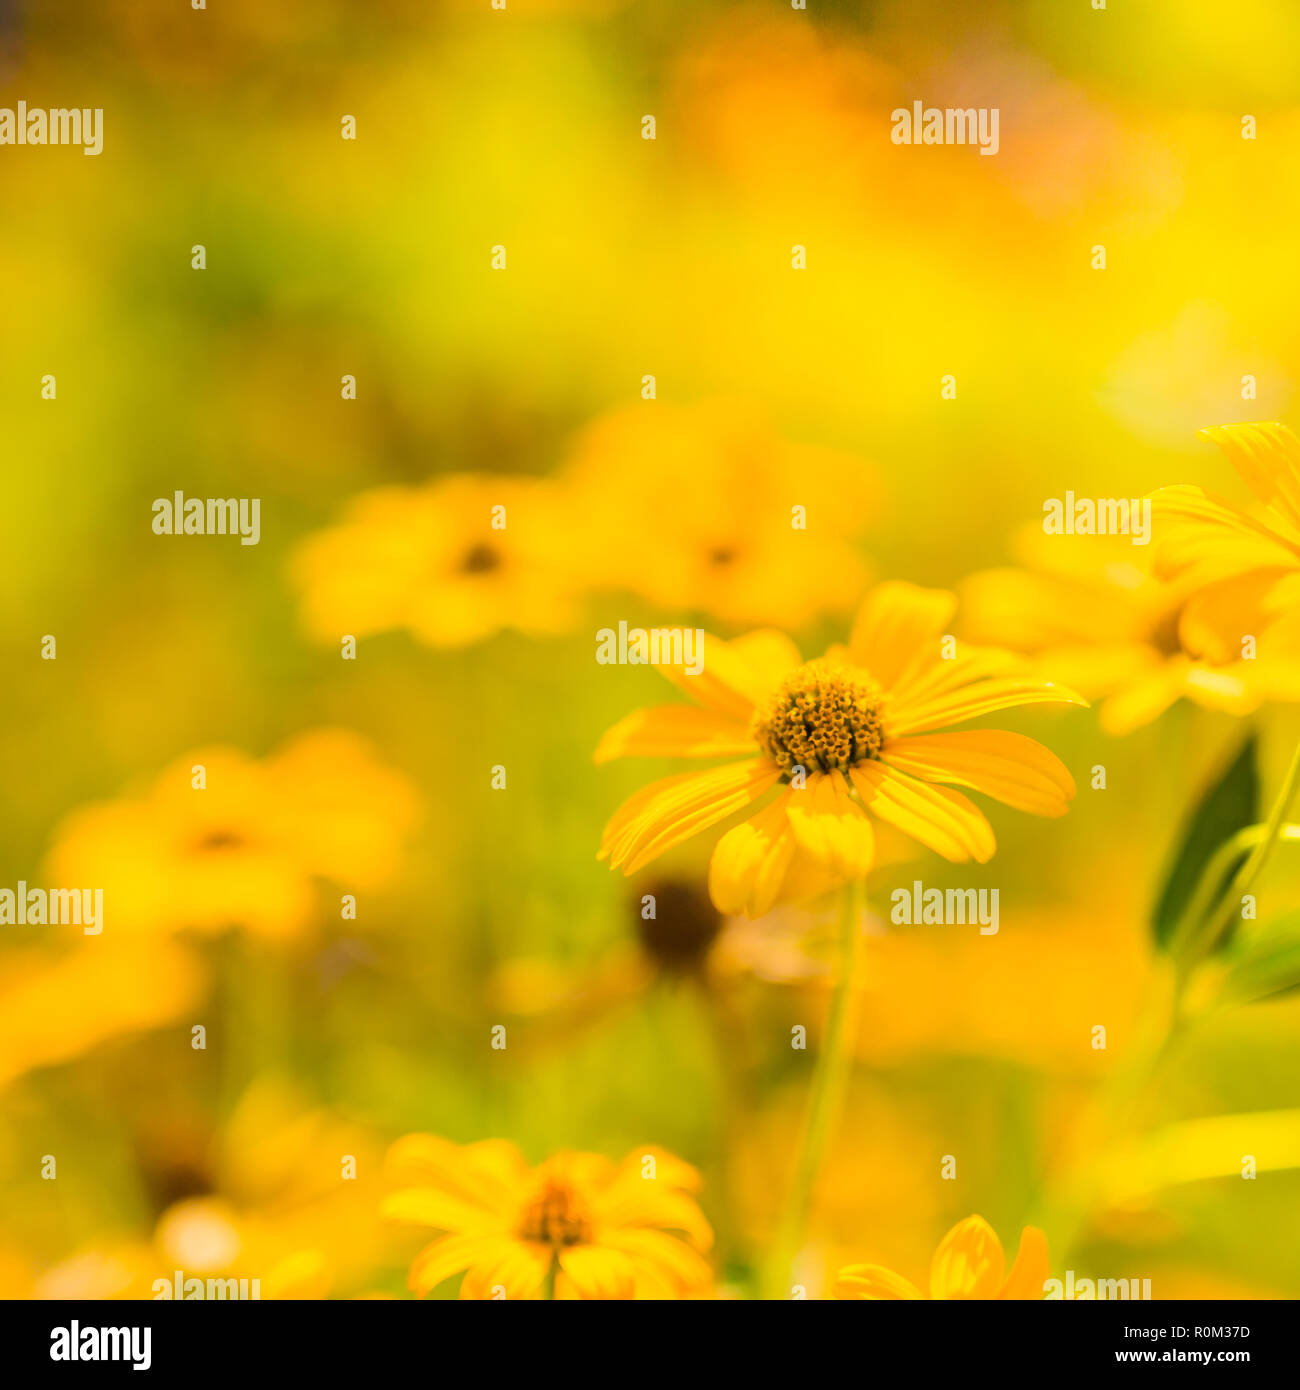 Beautiful spring summer yellow flowers and blurred bokeh background. Tranquil nature scene, blooming flowers and meadow field concept. Relaxing nature - Stock Image